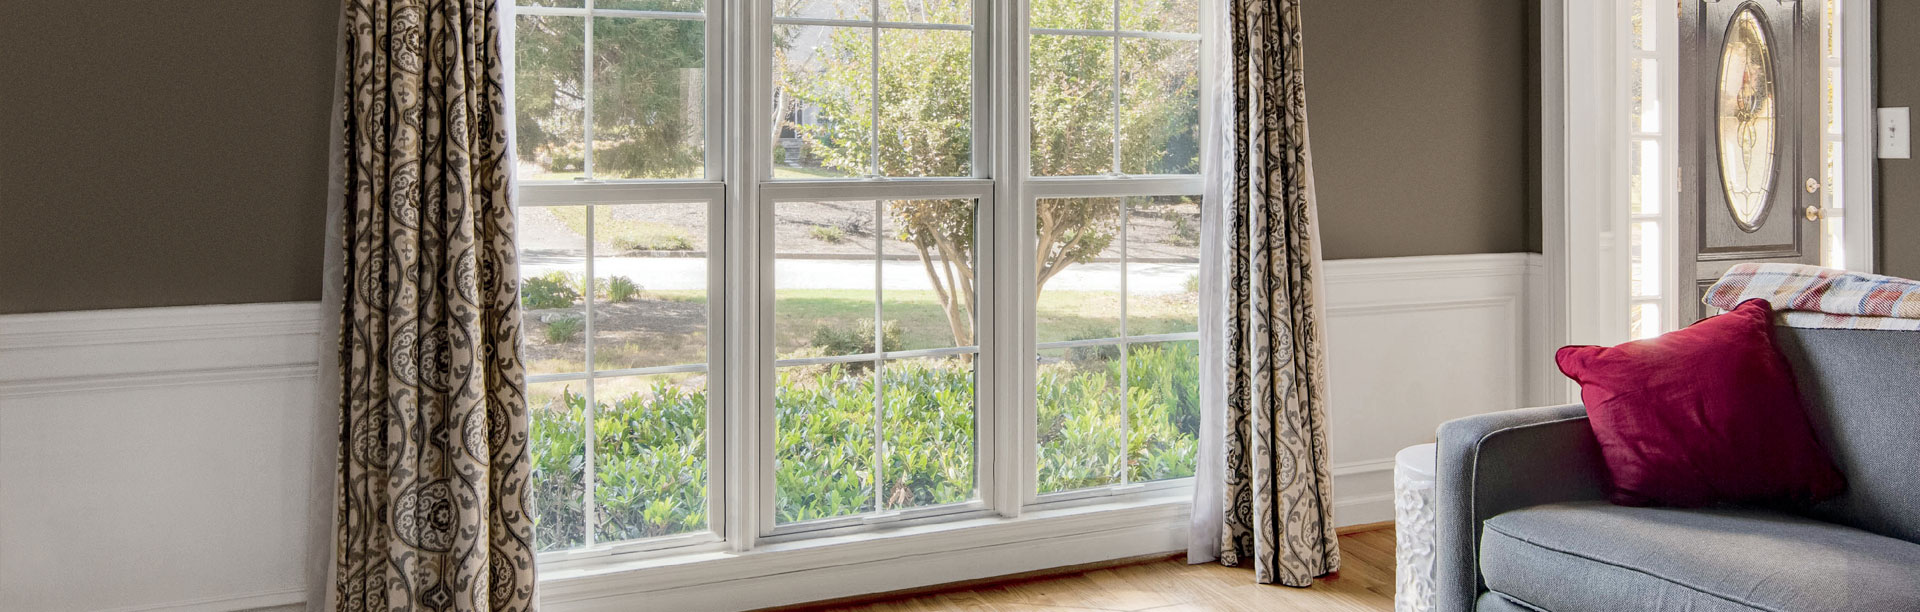 Double Hung Windows in Living Room